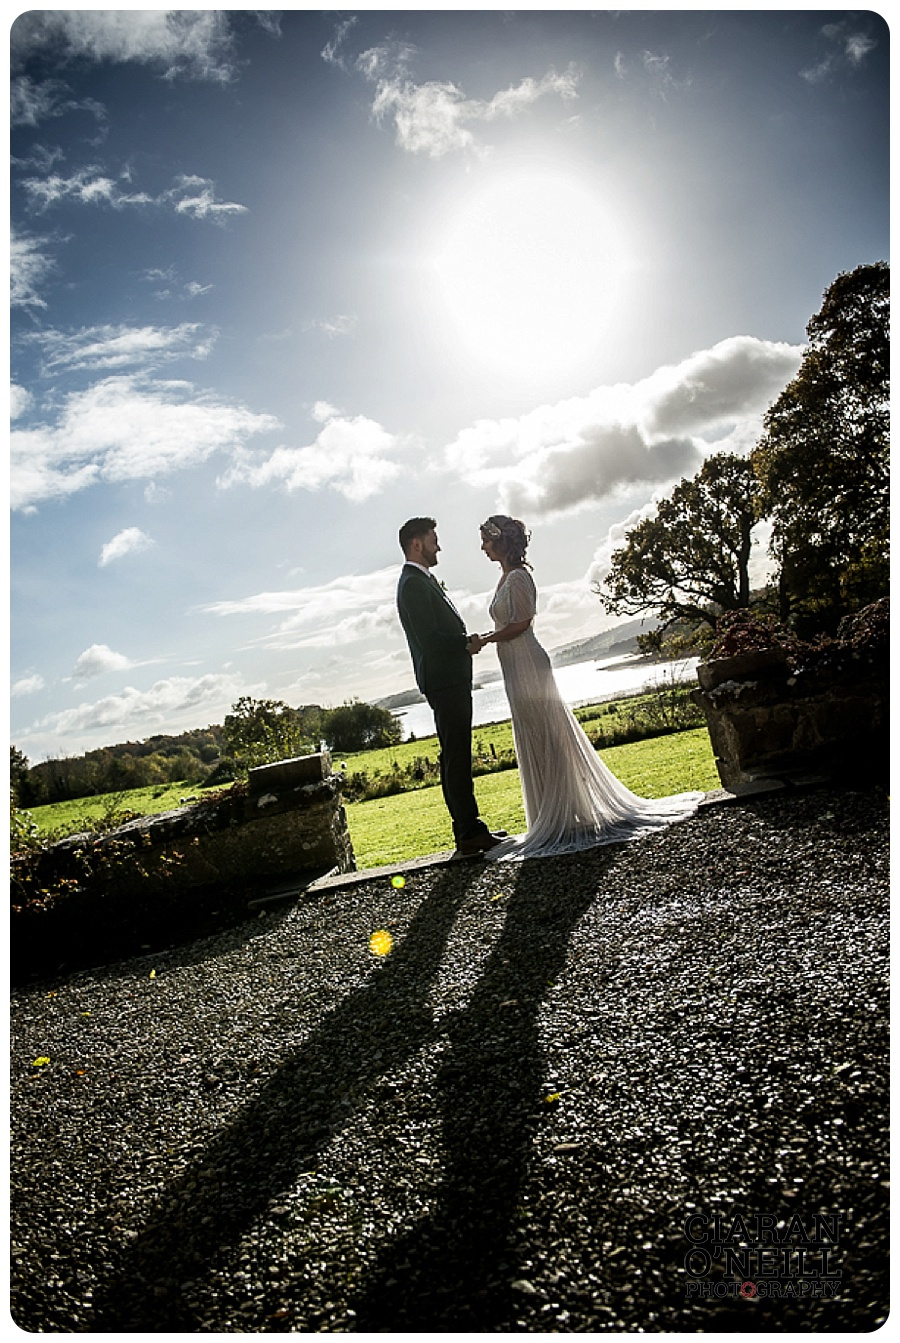 emma-tonys-wedding-at-belle-isle-castle-by-ciaran-oneill-photography-11